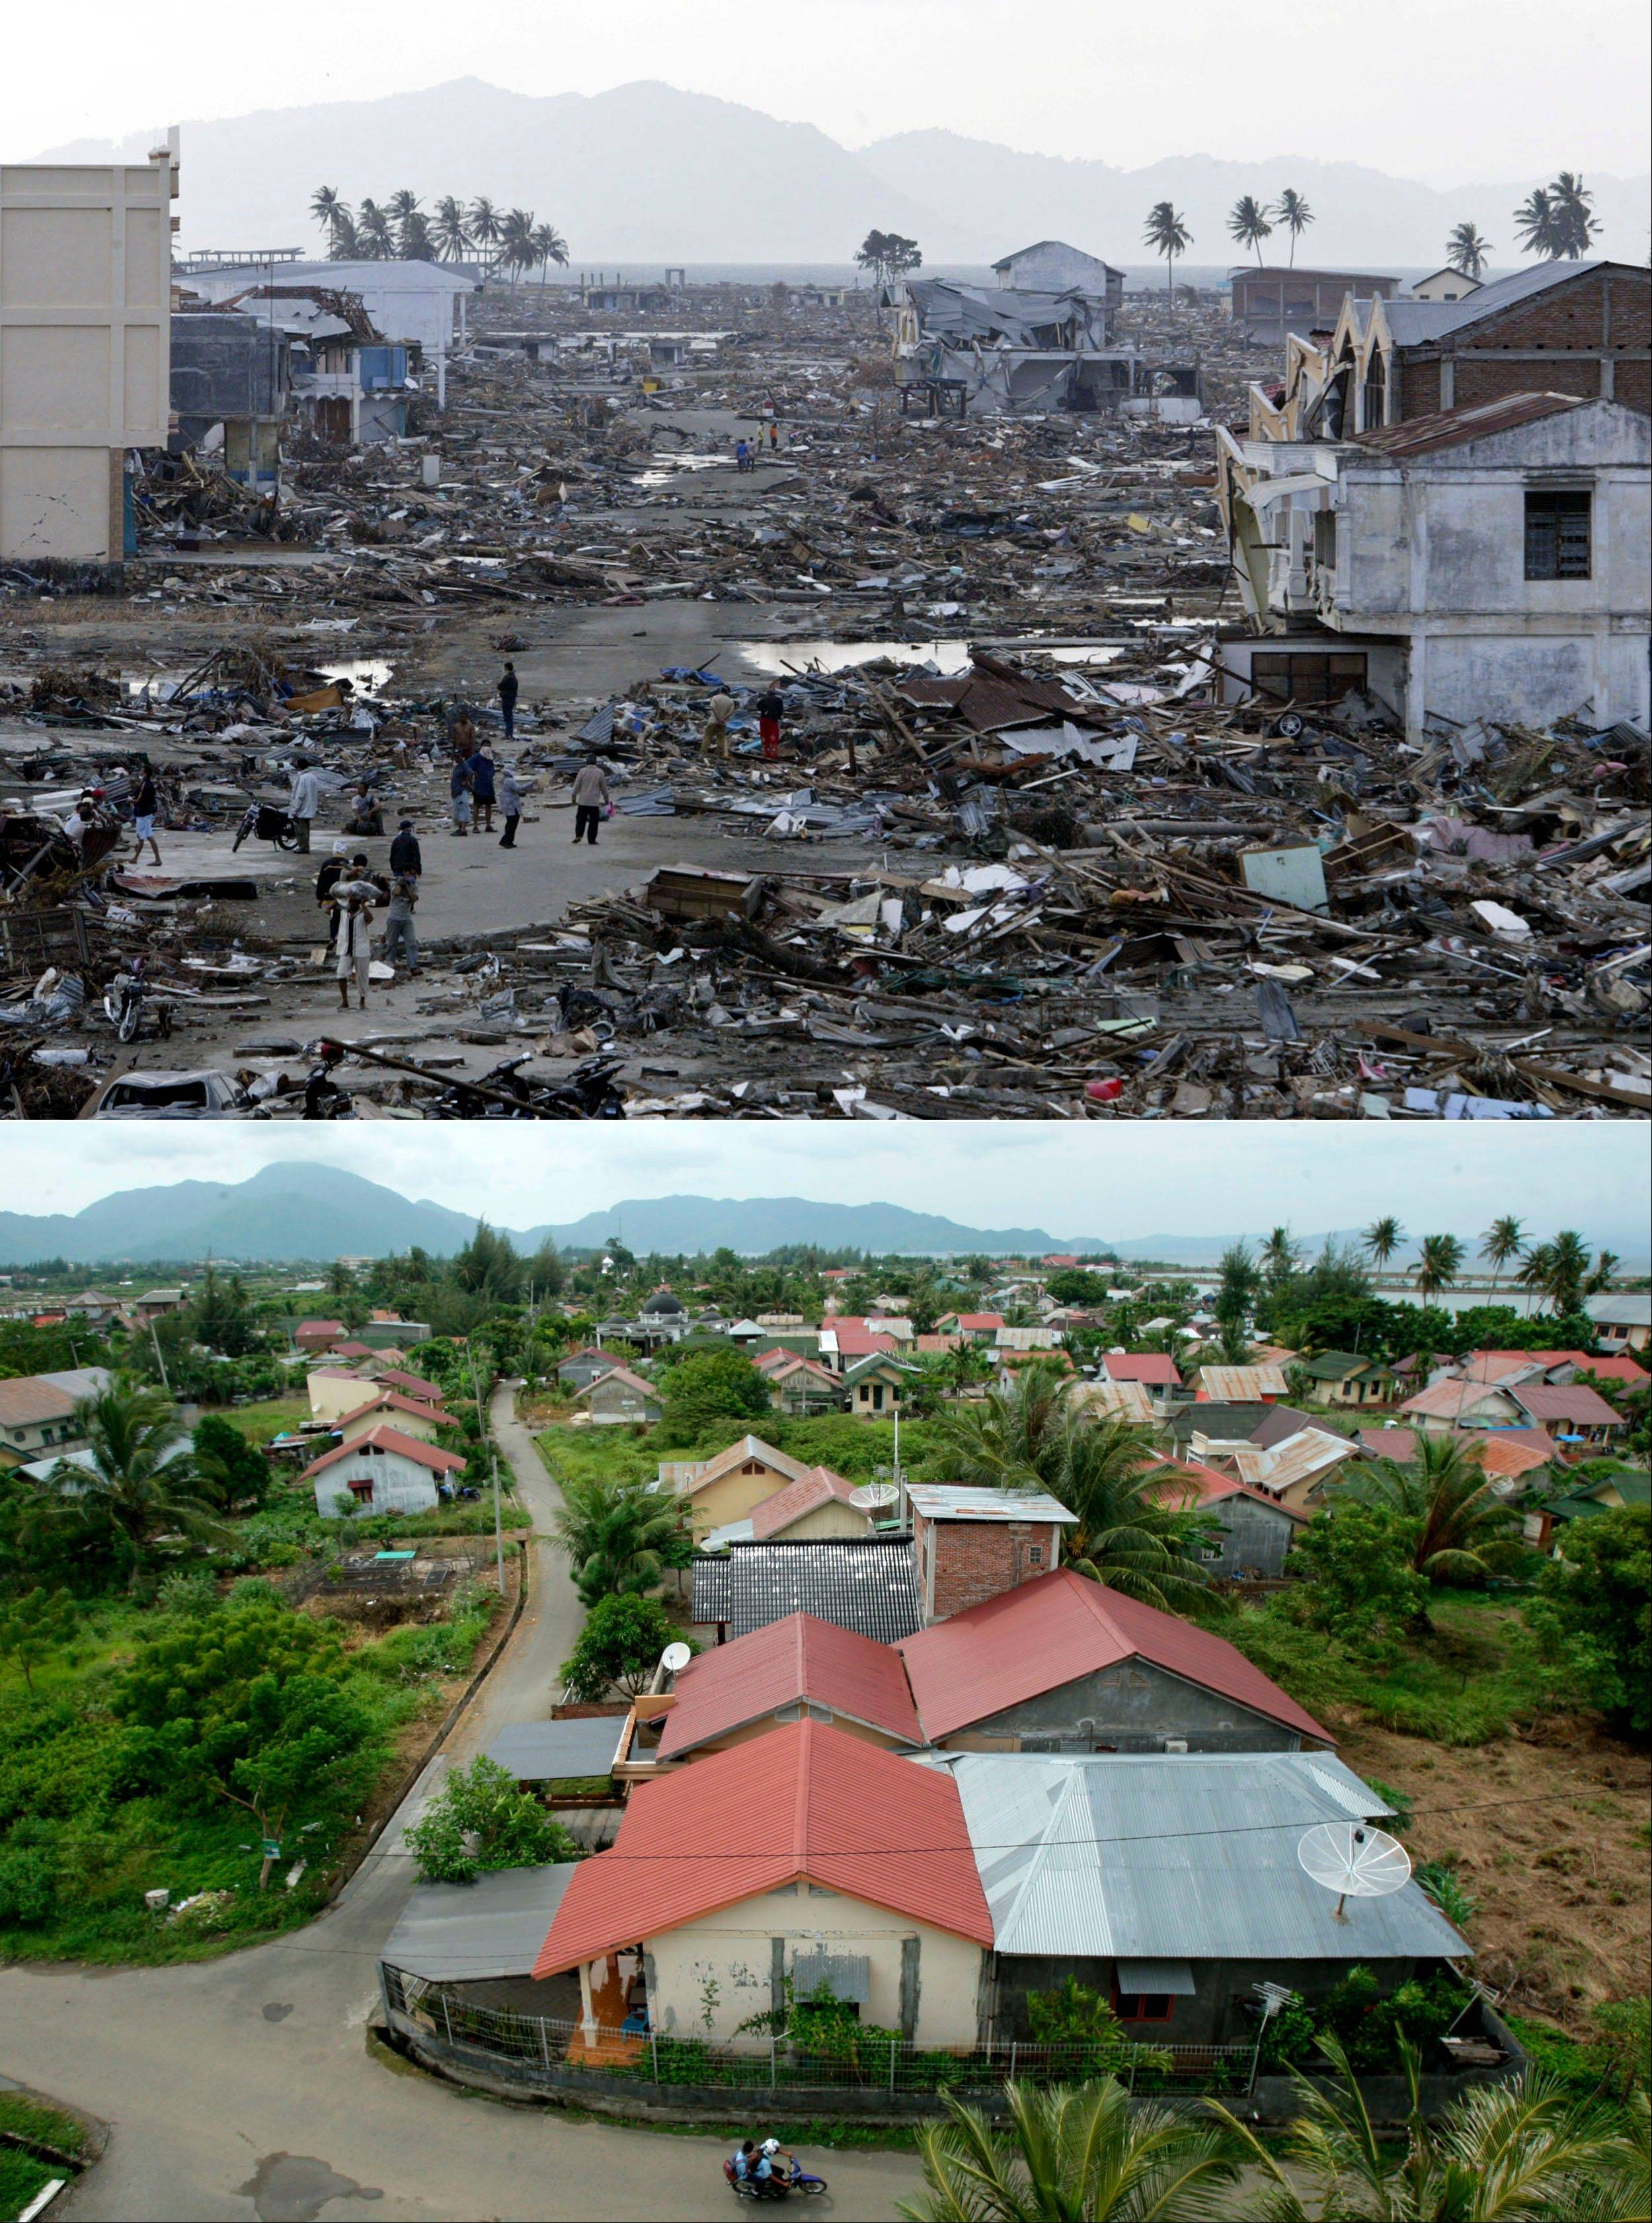 This combination of photos shows areas affected by the earthquake-triggered tsunami which hit Indonesia, on Dec 25, 2004. The top photo shows a devastated area on Dec 31, 2004, six days after the tsunami. The bottom photo shows an area with rebuilt housing on Nov. 19, 2013.